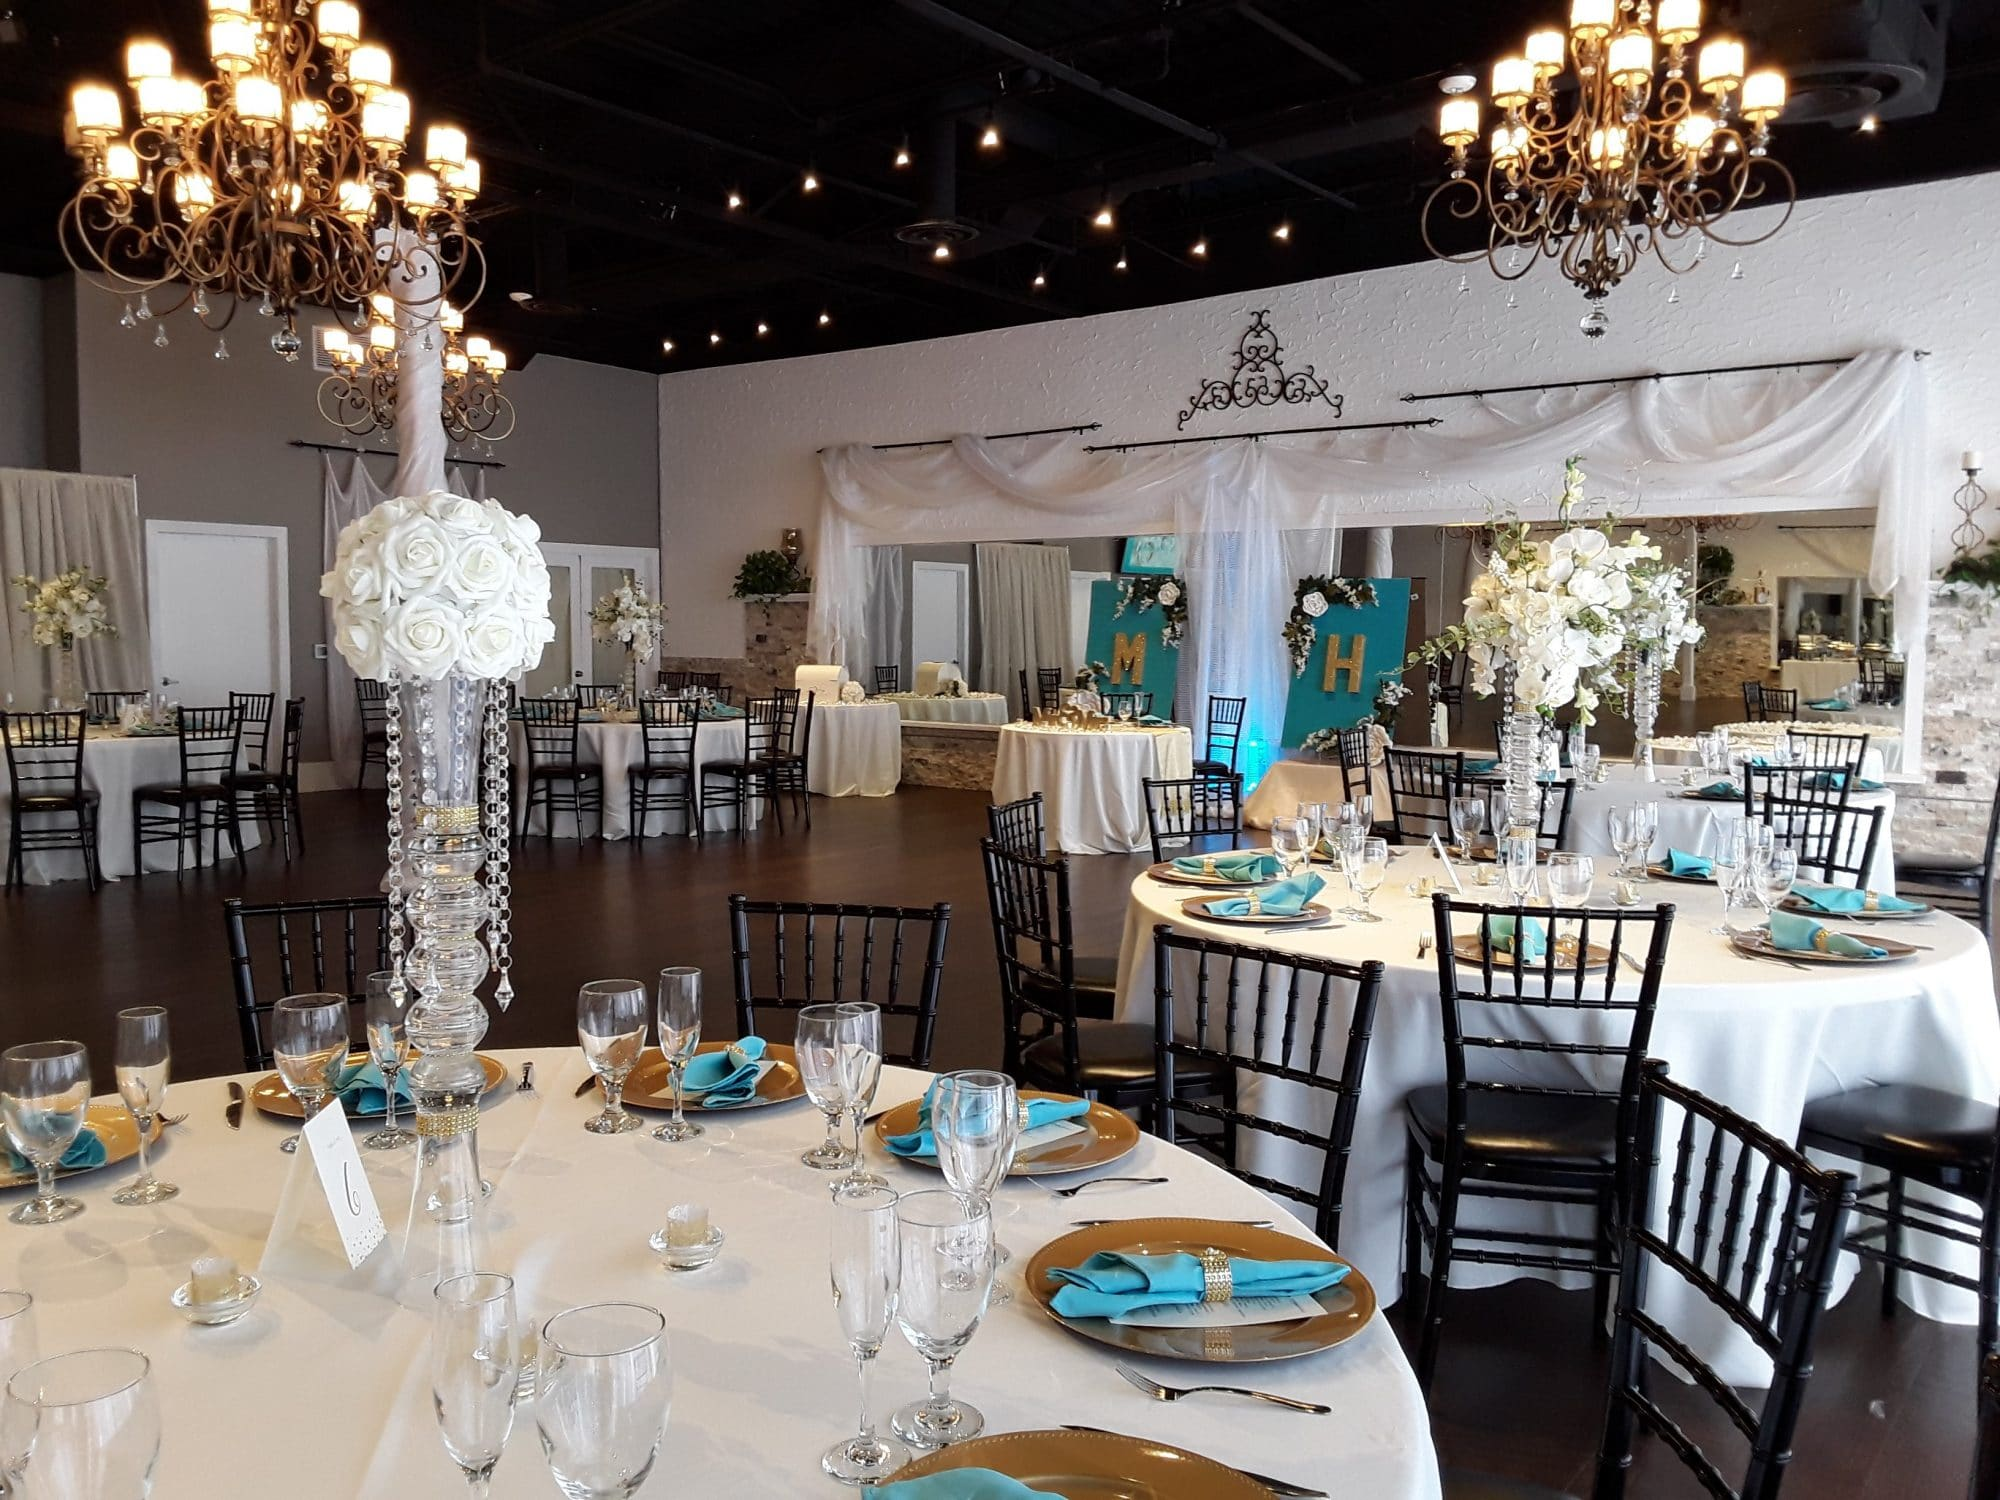 White and gold reception room with touches of turquoise at Rhythm & Smooth.